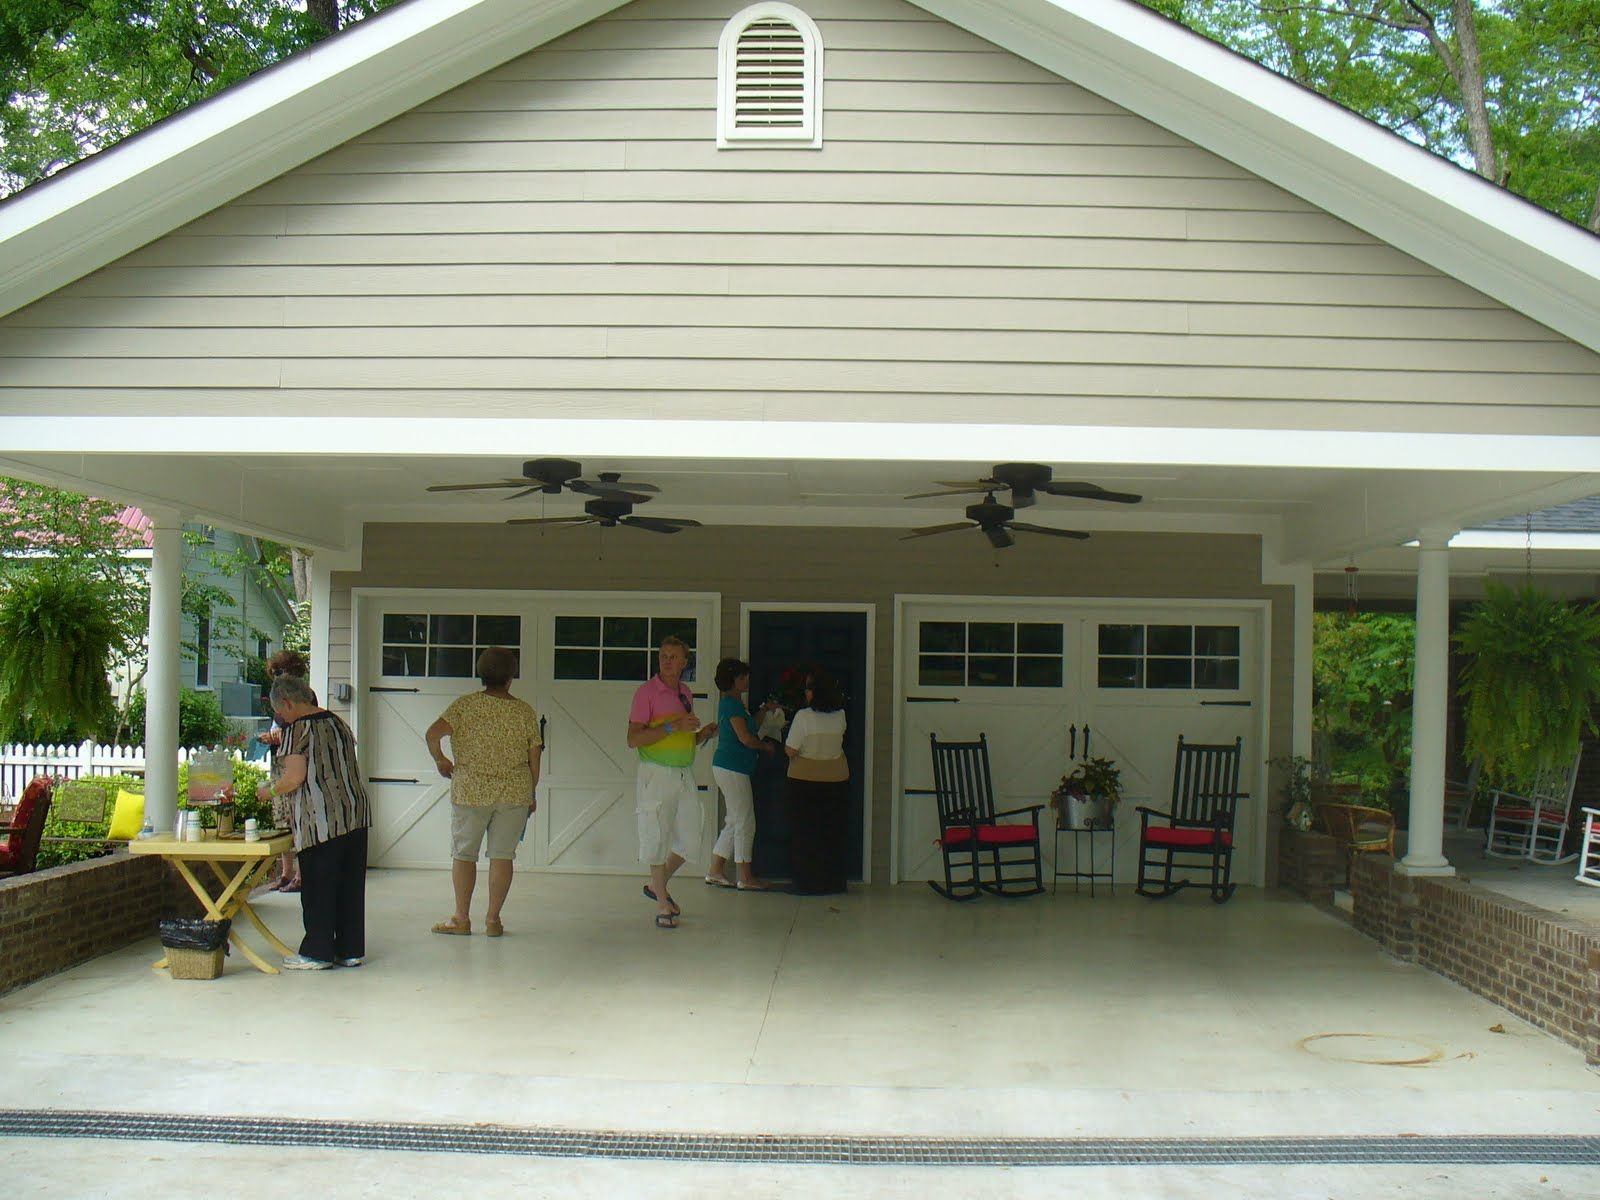 House plans with breezeway to carport for House plans with carport